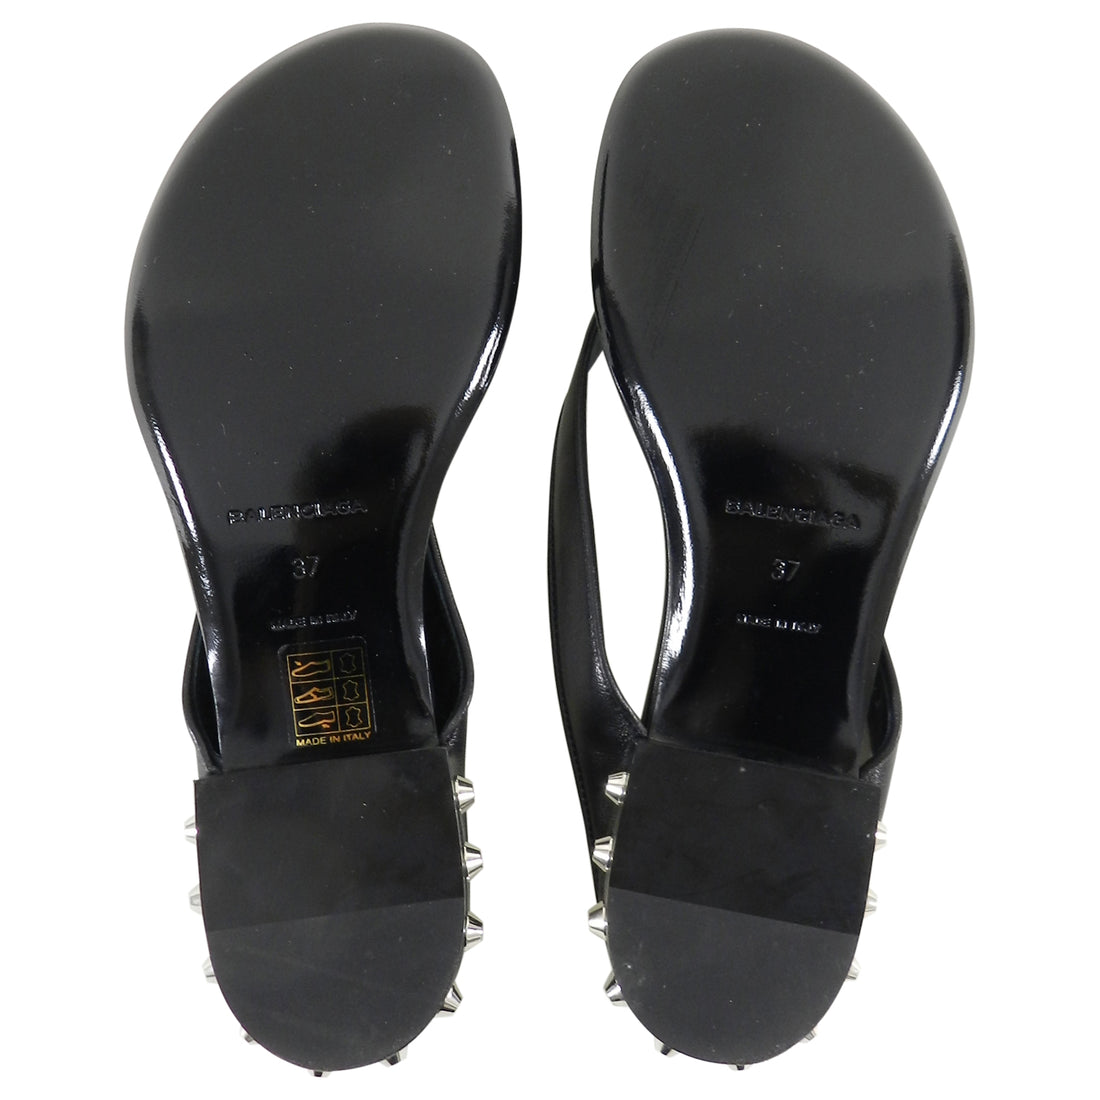 Balenciaga Black Leather Thong Sandals With Silver Stud Heels - 37